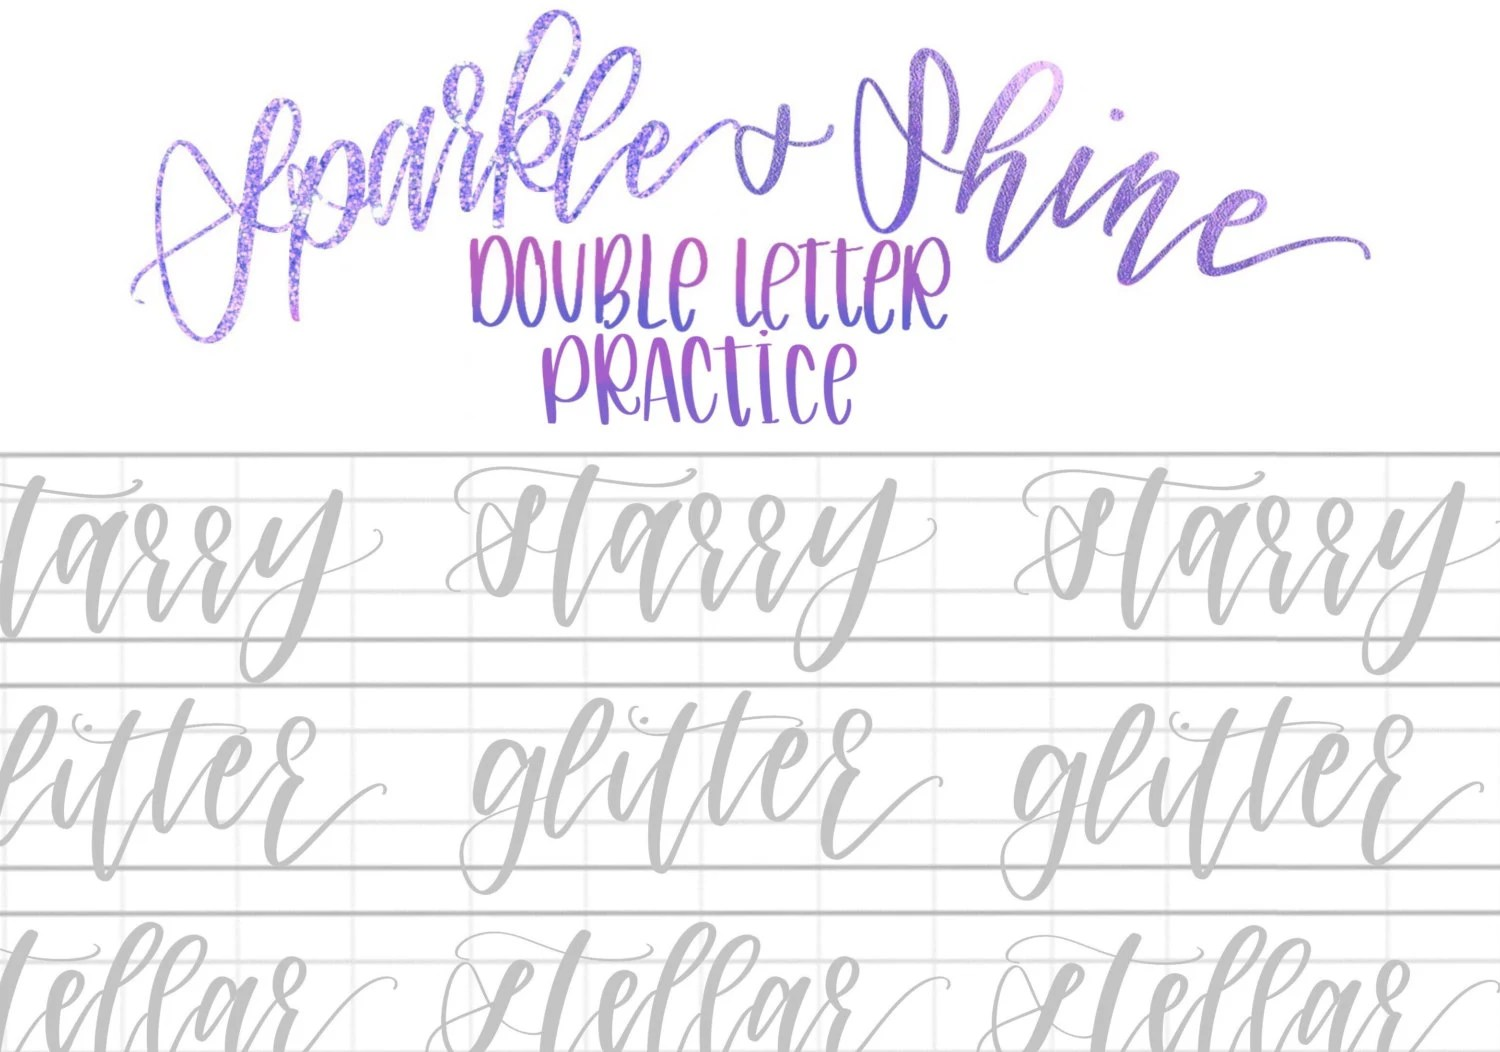 Hand Lettering Practice Sheets Sparkly Double Letter Words